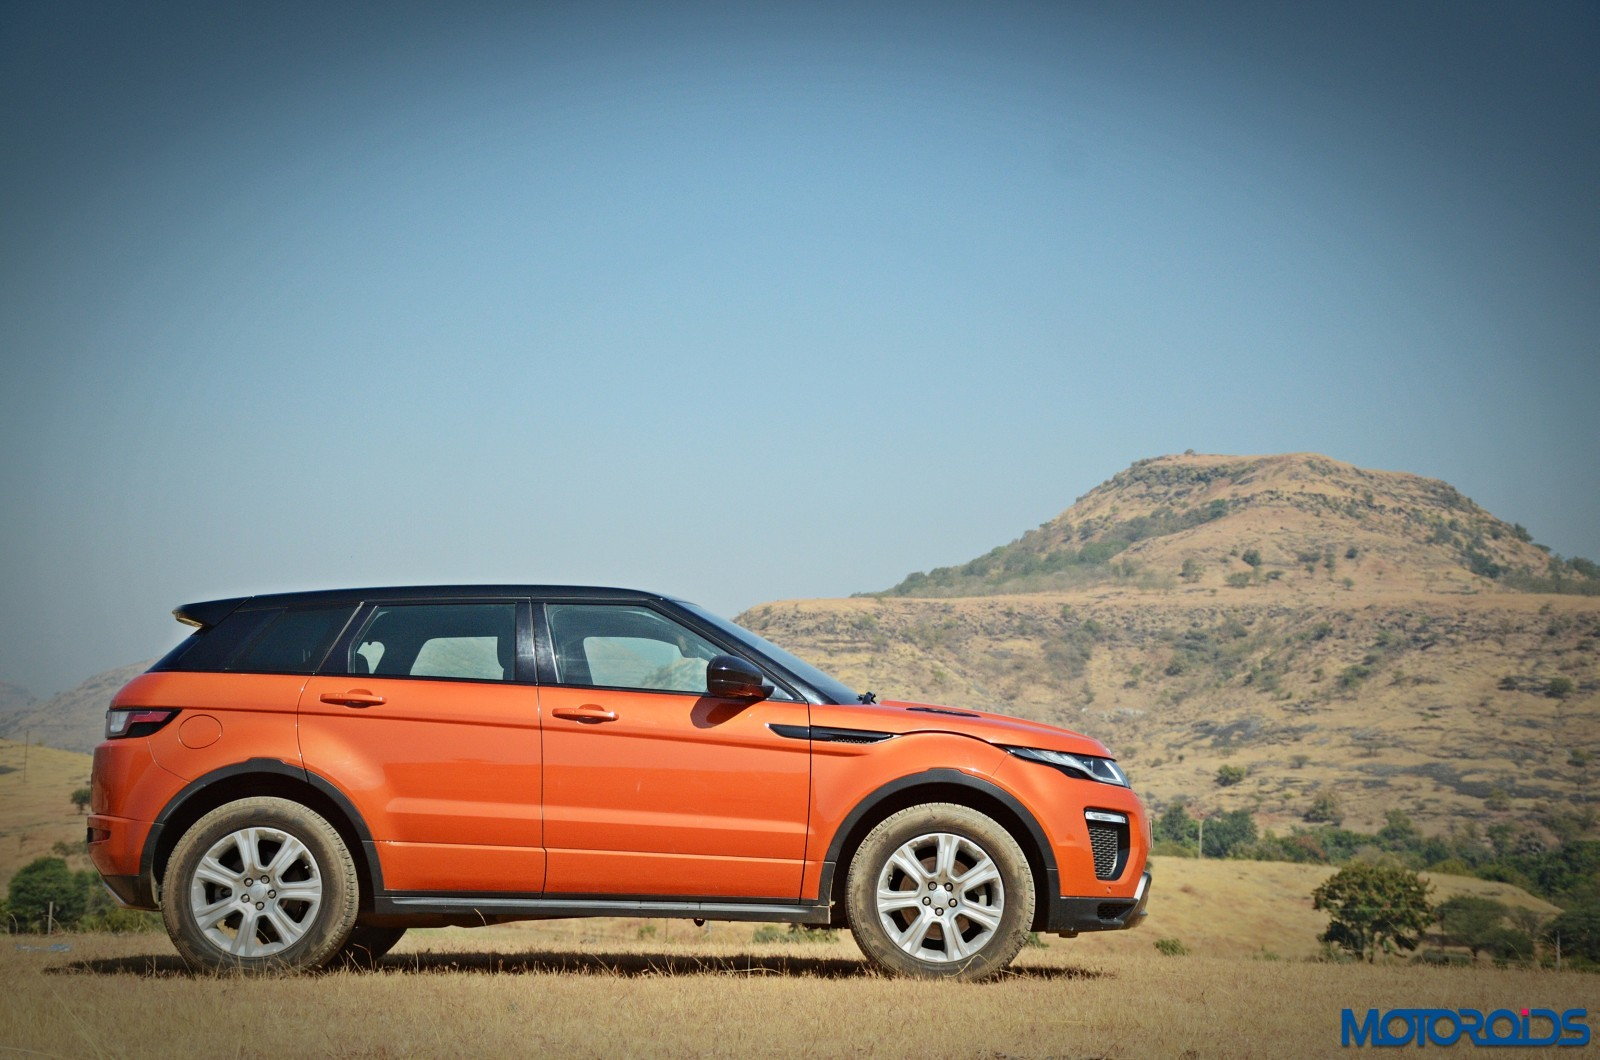 Range-Rover-Evoque-India-review-2